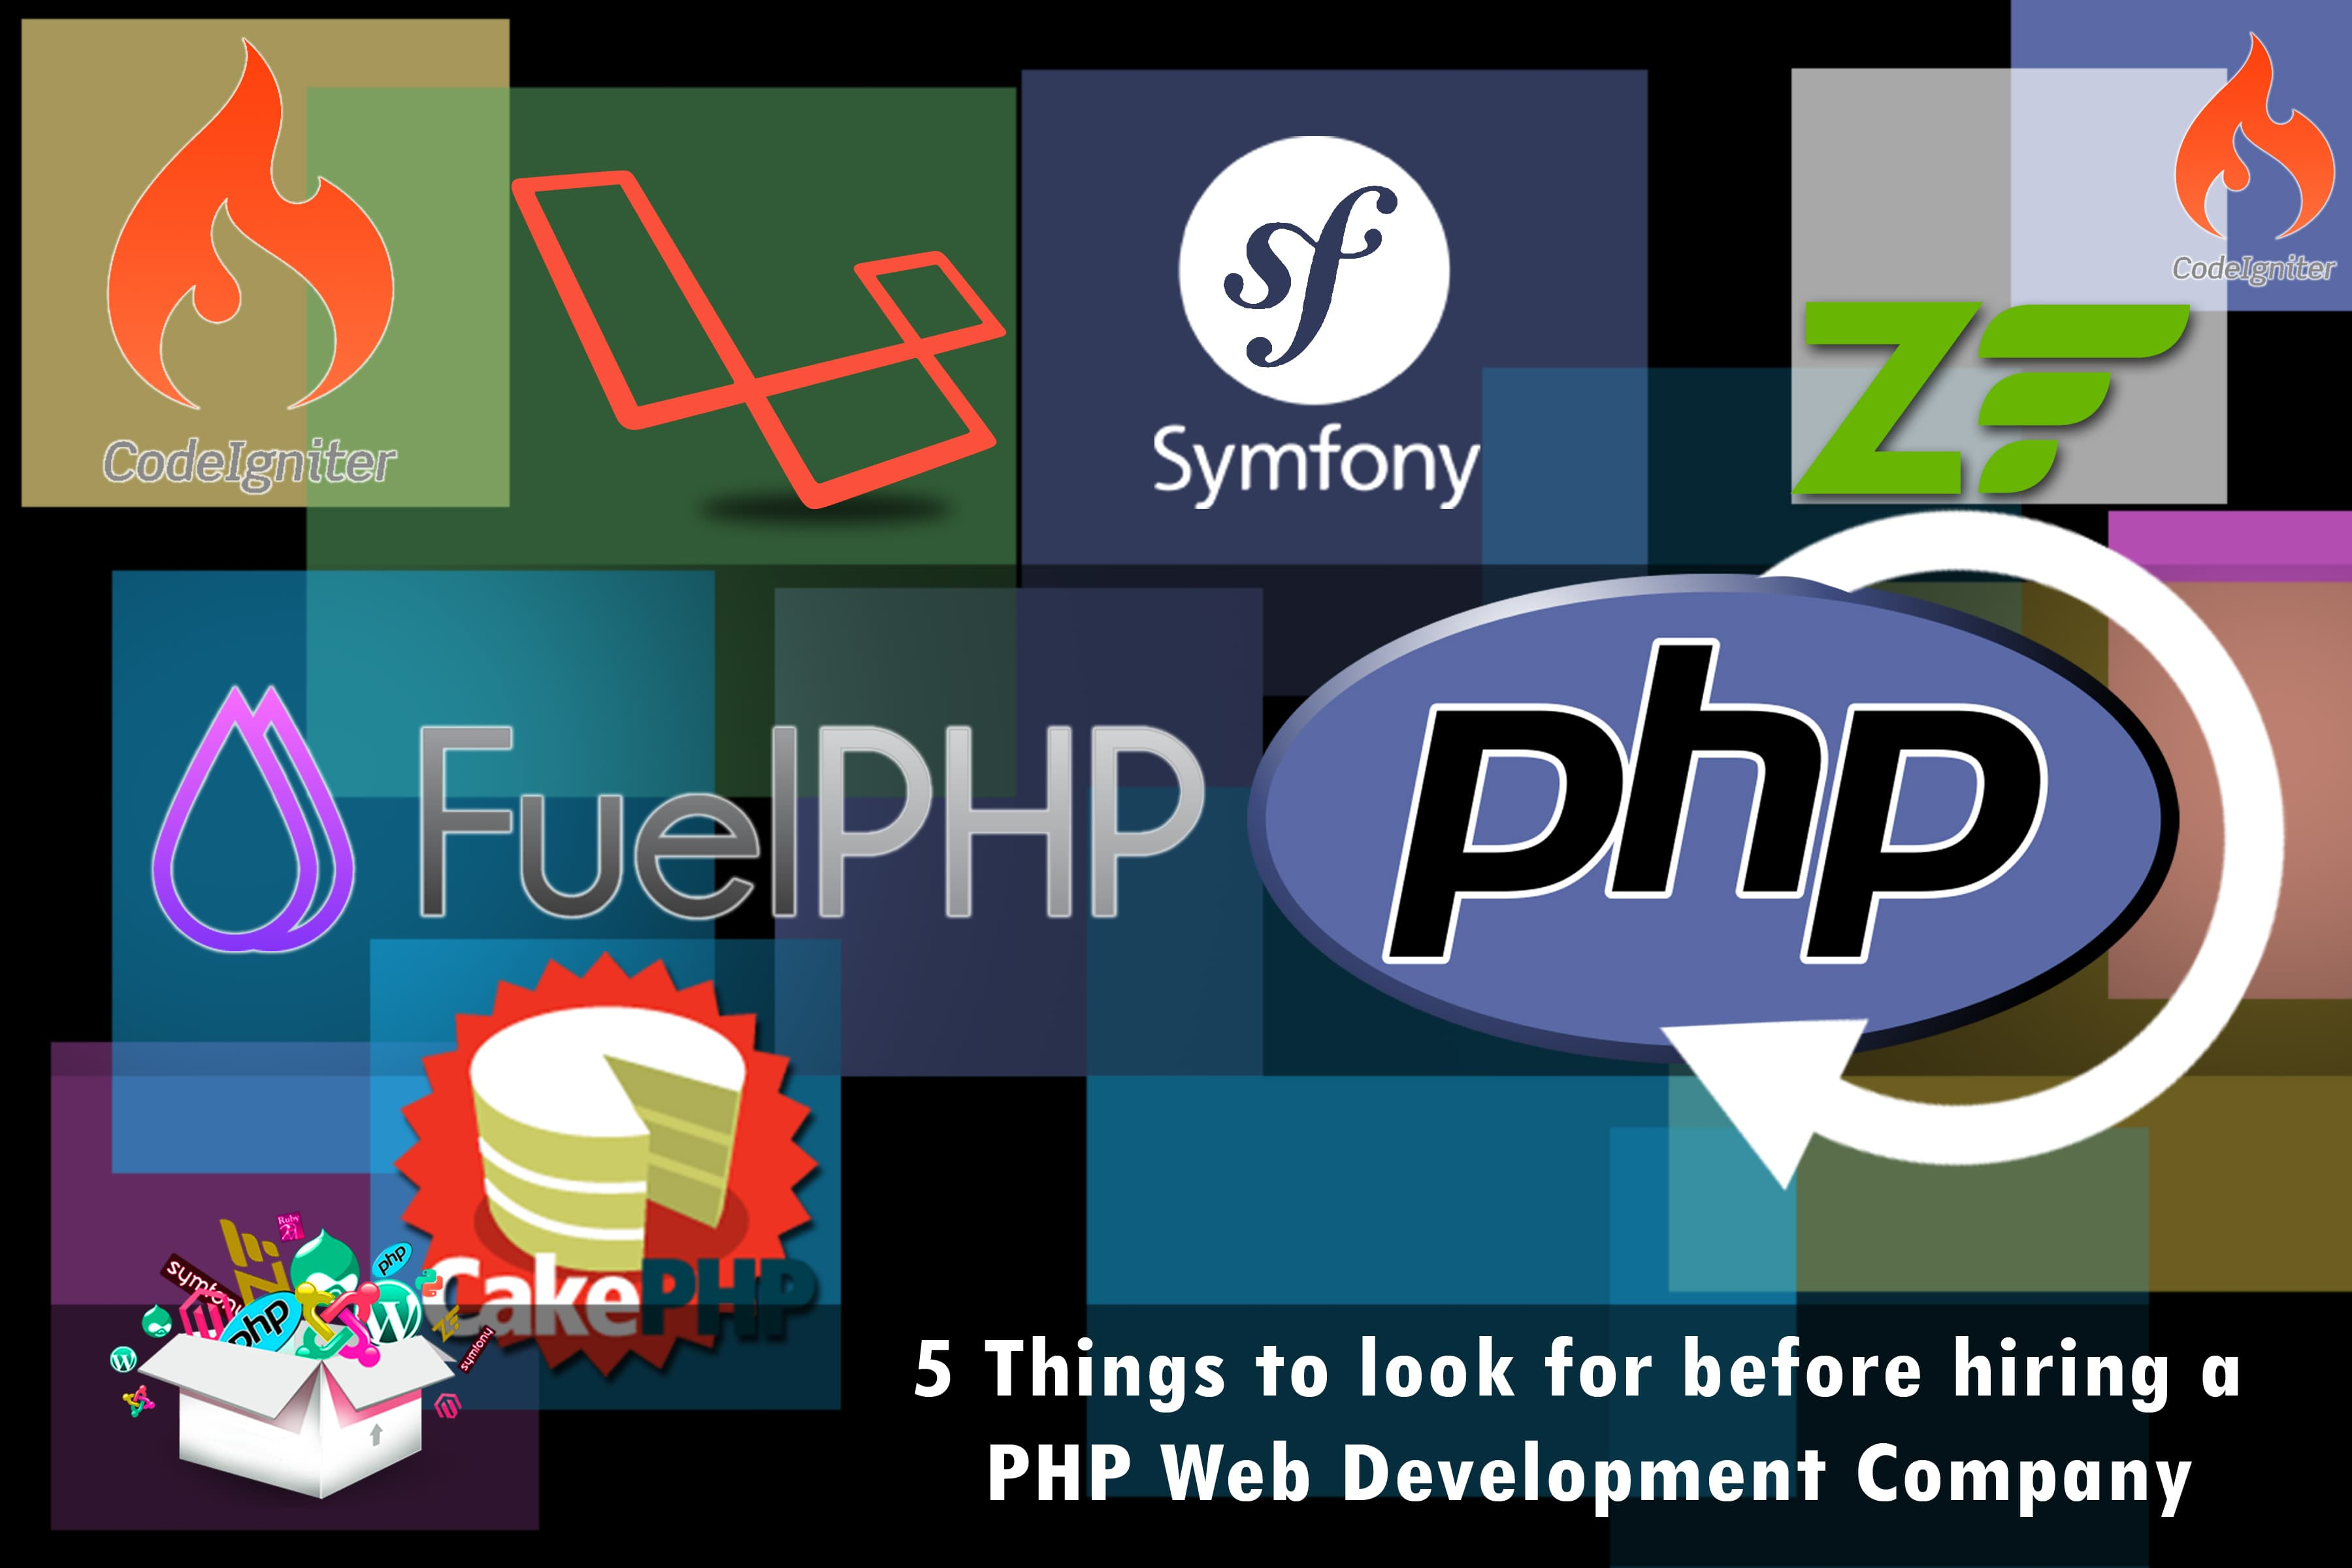 5 Things to look for before hiring a PHP Web Development Company